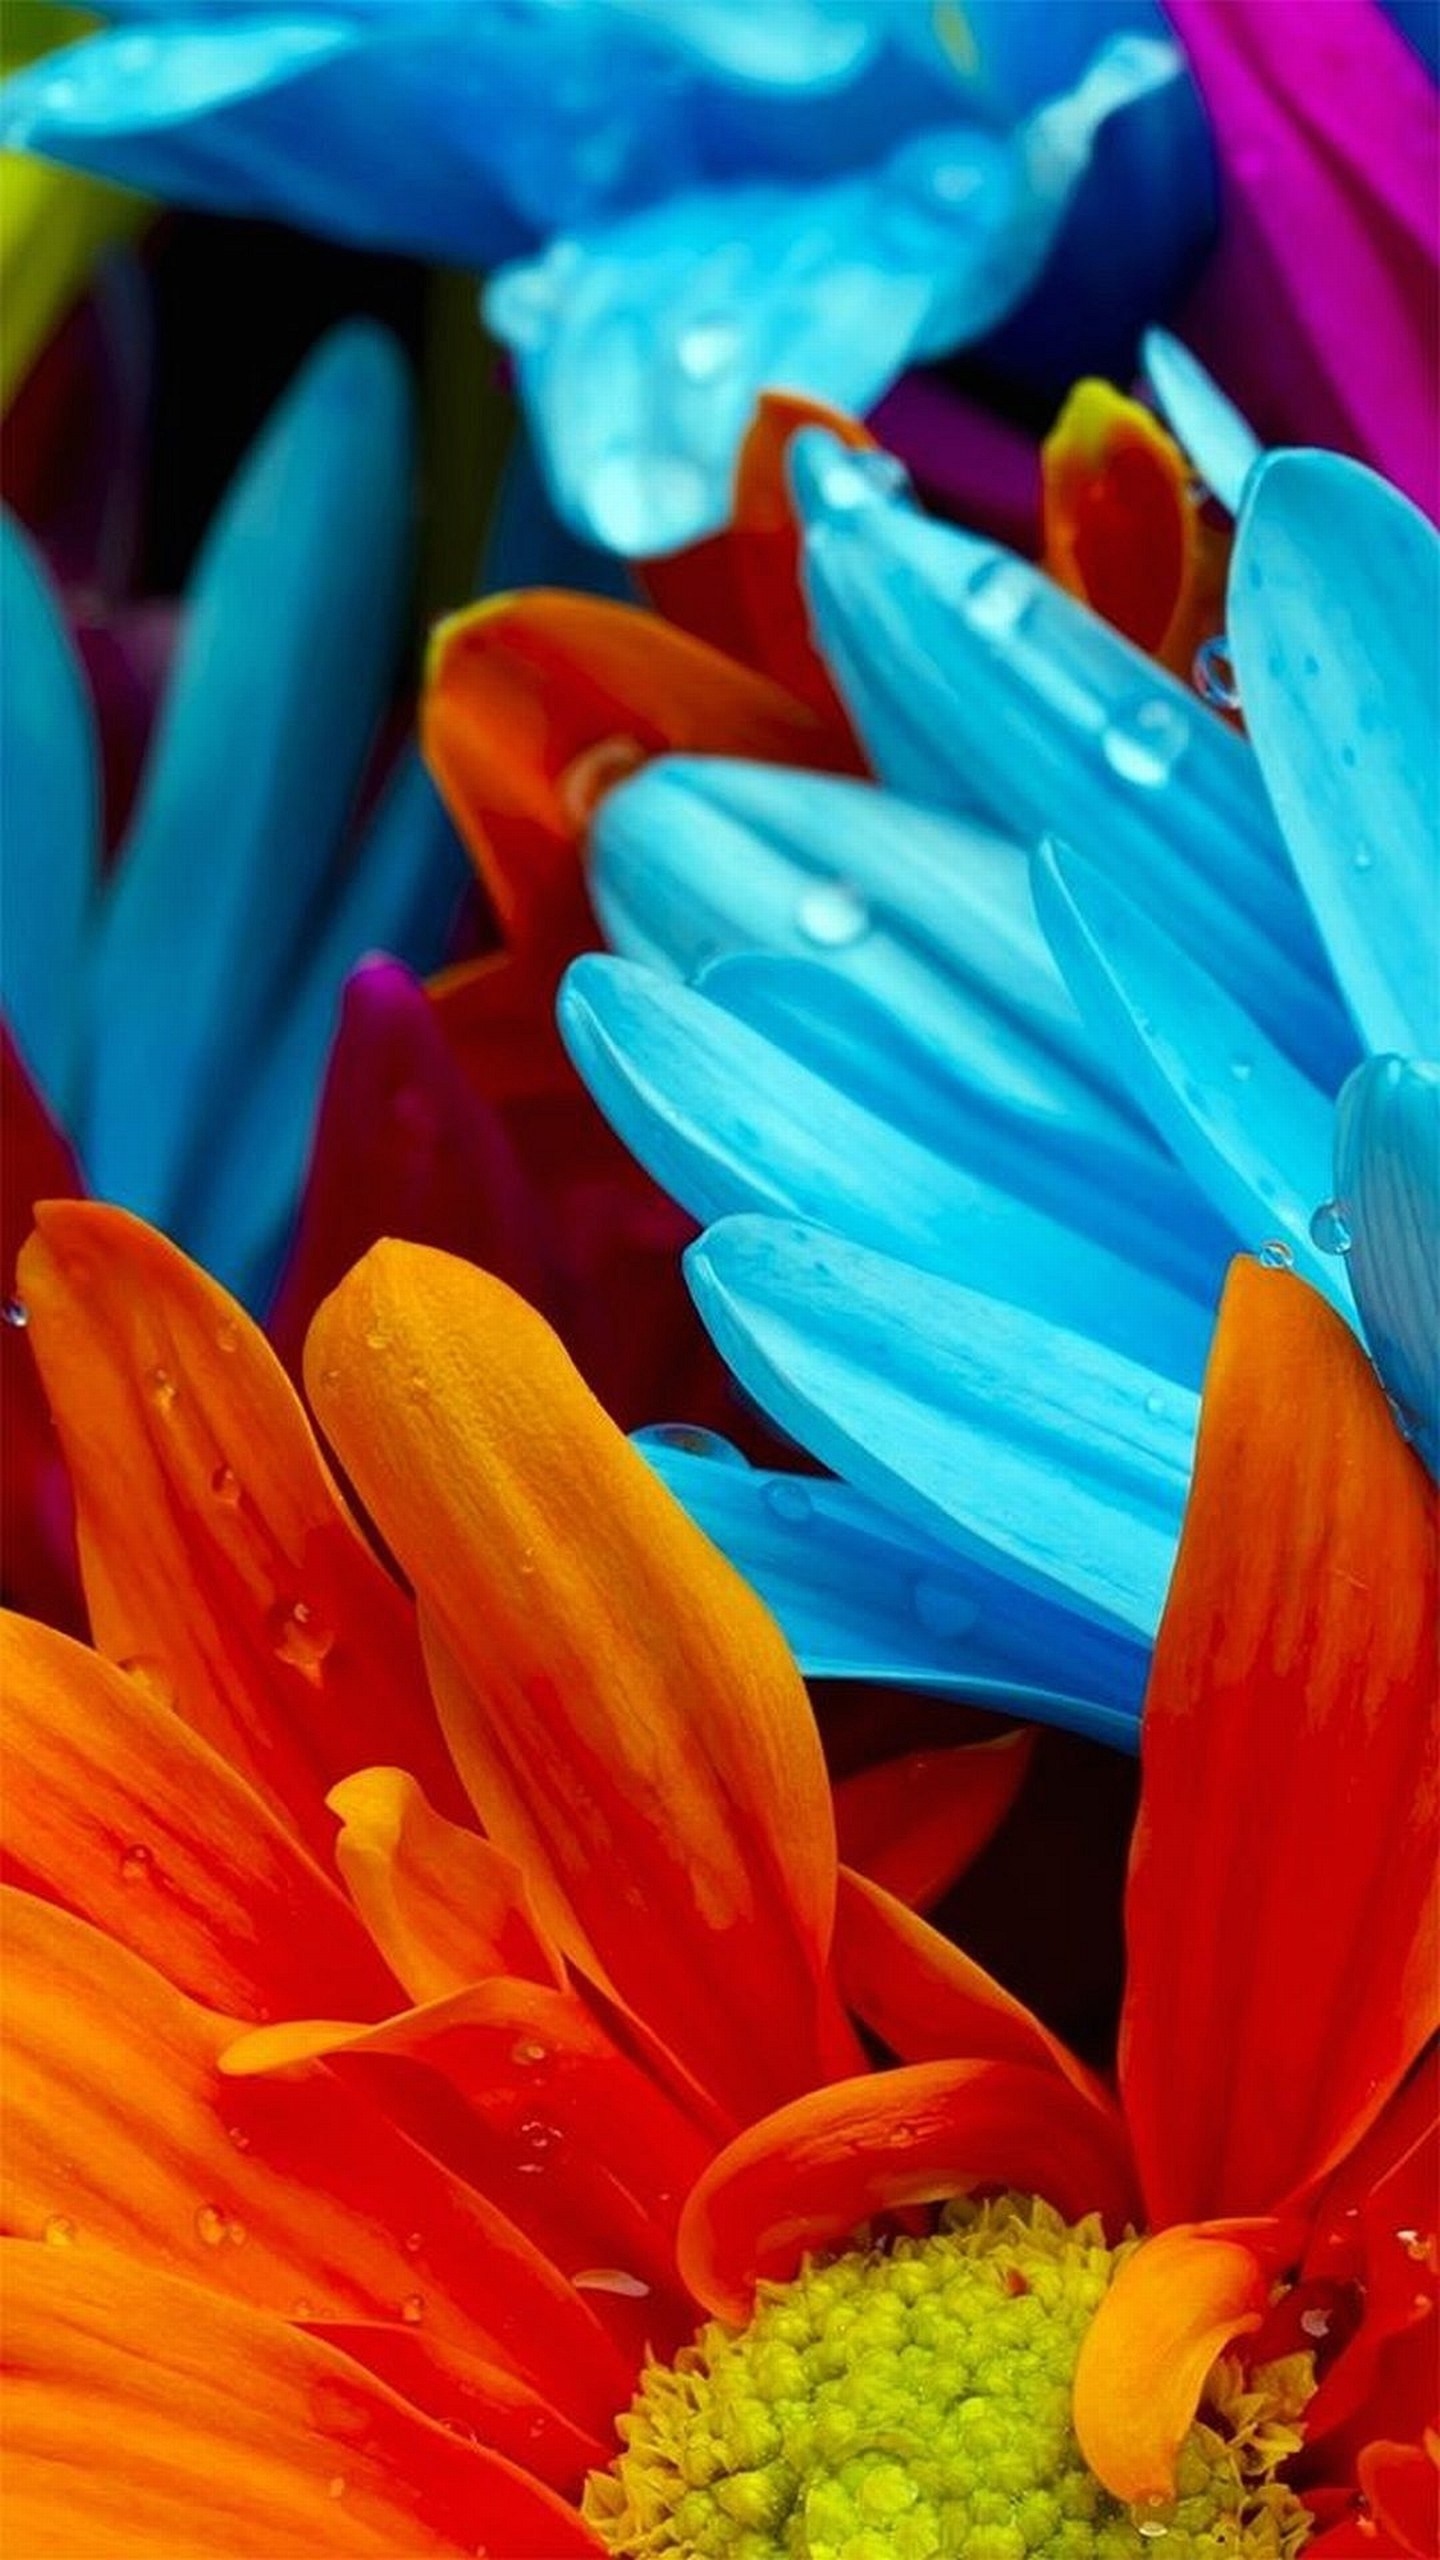 Free Colorful Flower Wallpaper Downloads: Colorful Flower Wallpapers (77+ Images